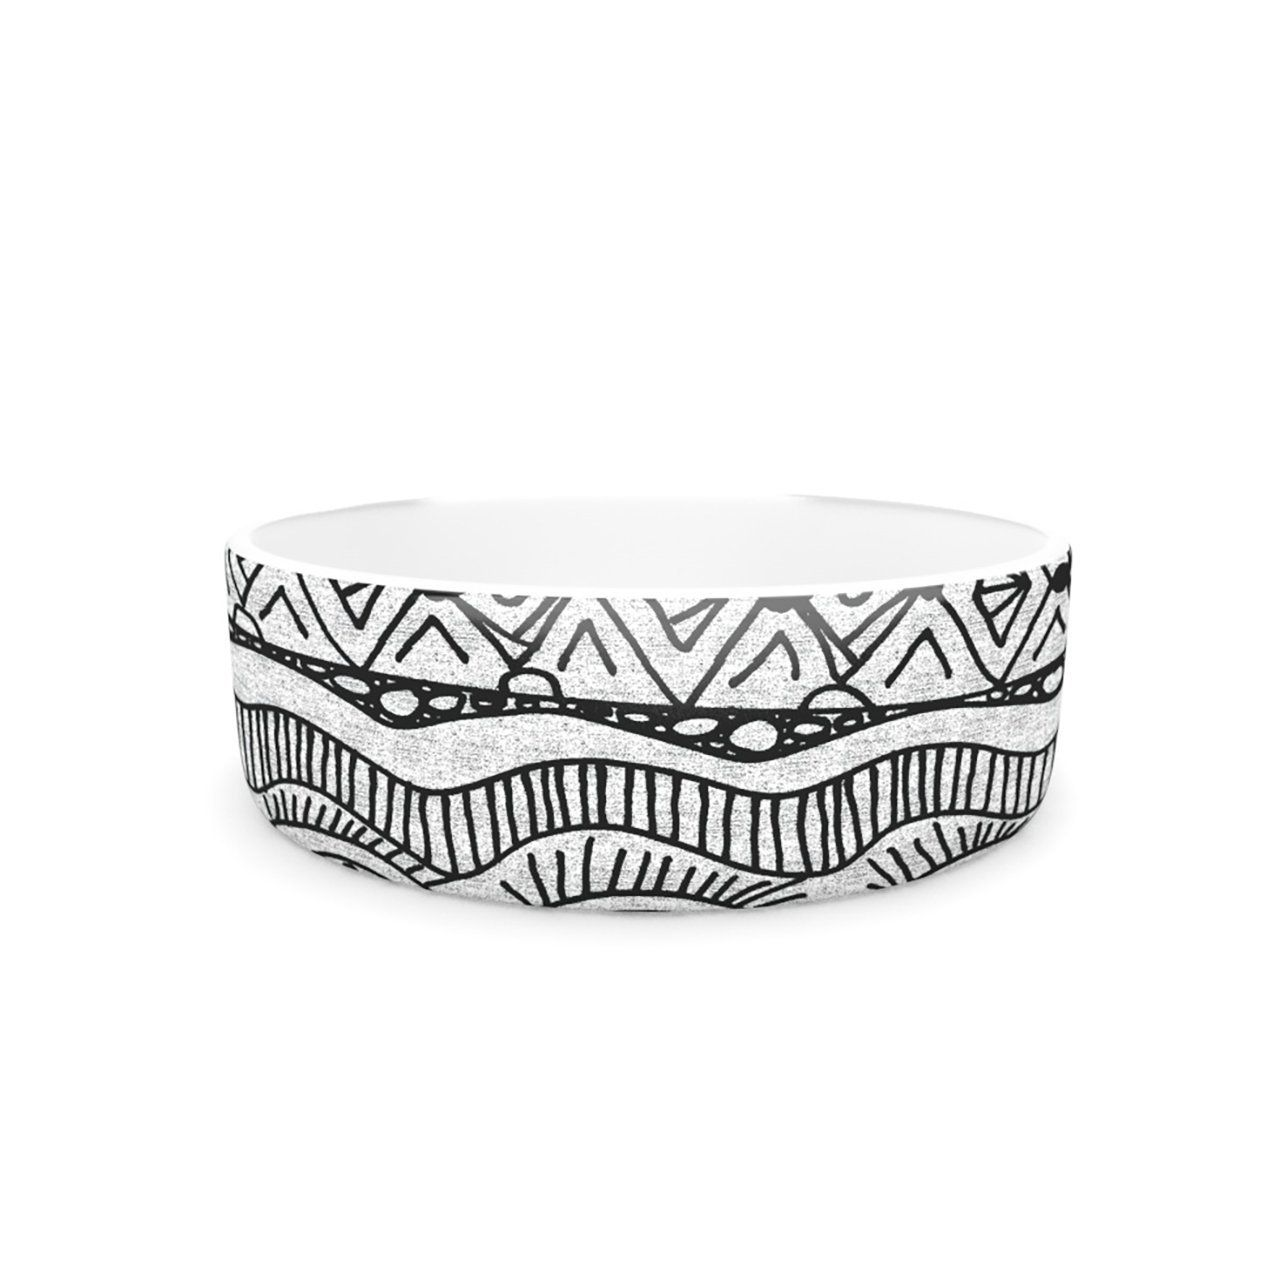 Kess InHouse Catherine Holcombe 'Blanket of Confusion' Pet Bowl, 7-Inch * Don't get left behind, see this great dog product : Pet dog bedding